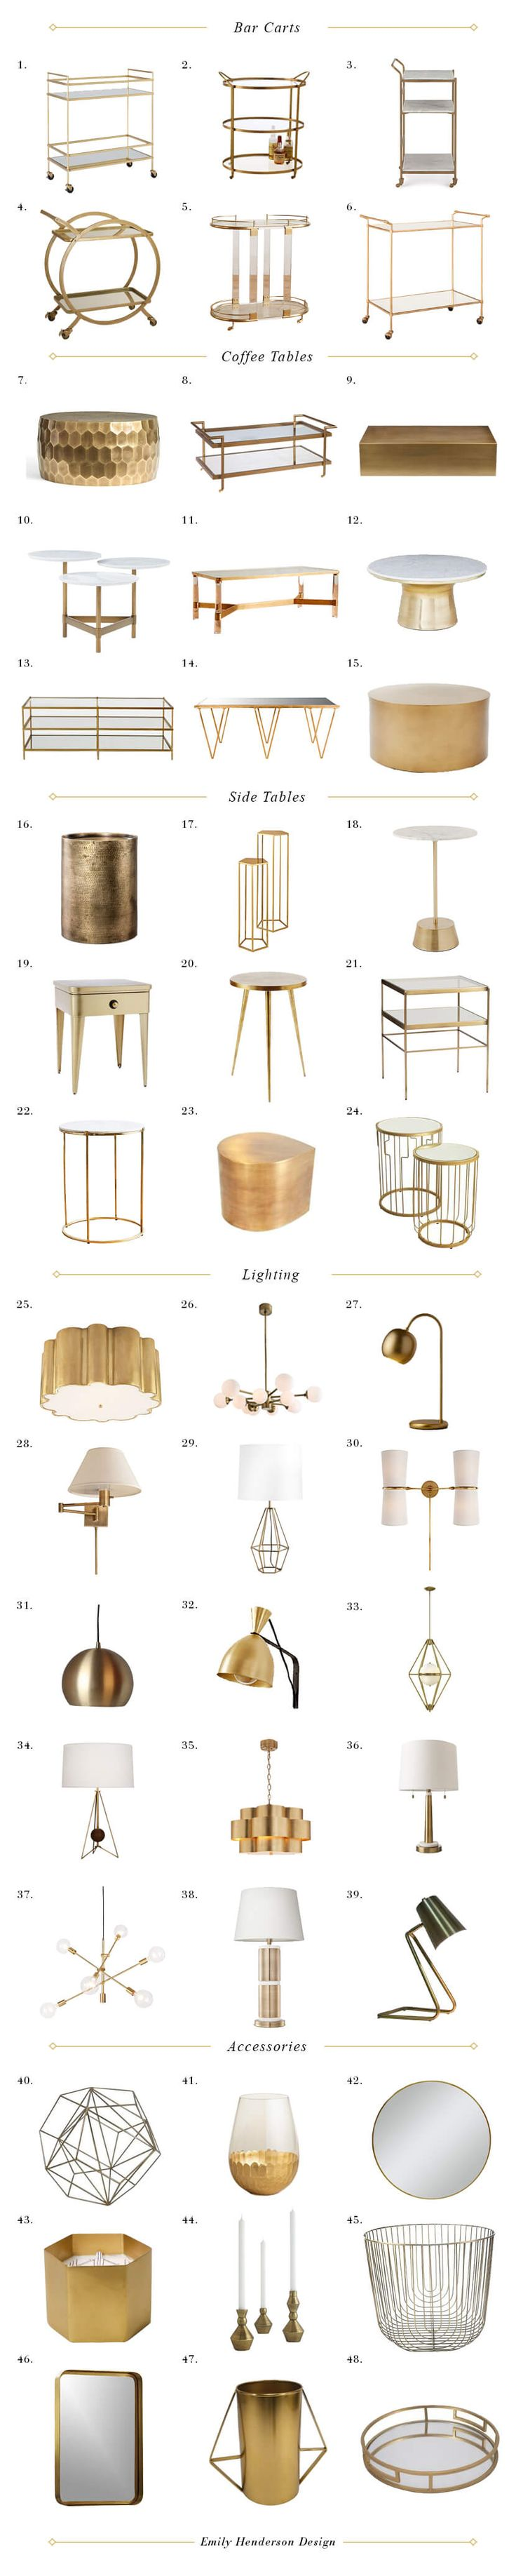 accent pieces in brass tones | interior decor | interior design | acentos de diseno interior | clasen martin design